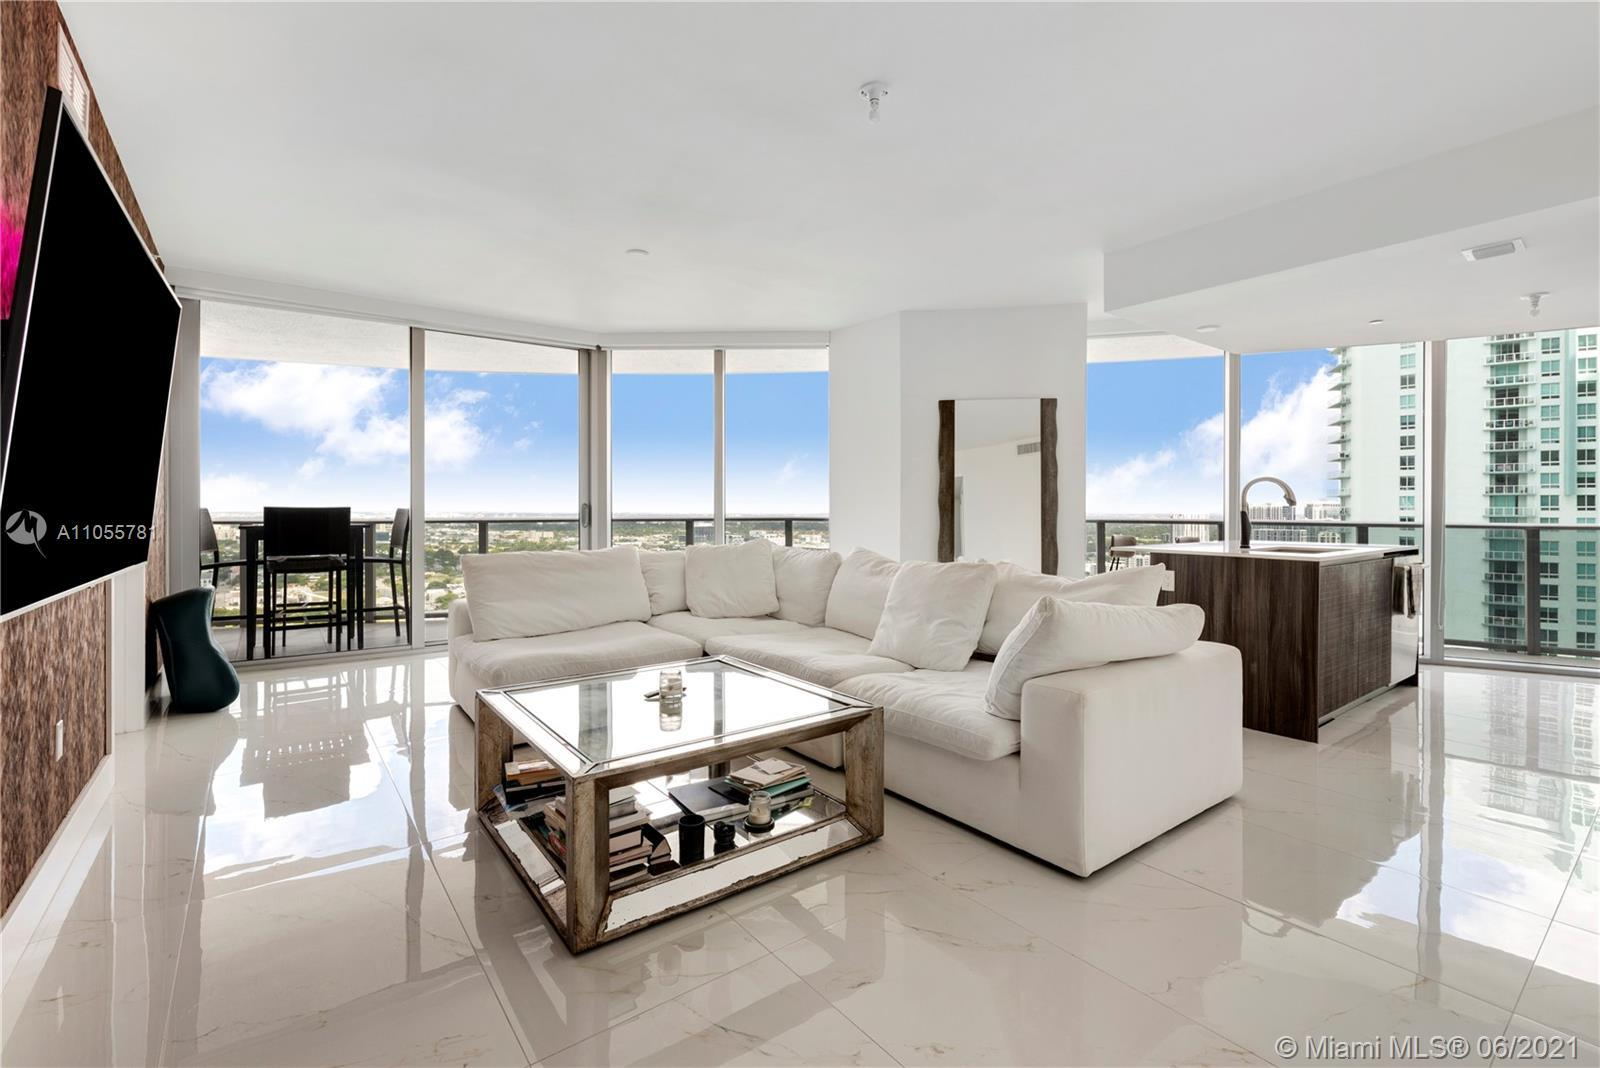 Desirable Bright and full of light, 01 line at ARIA ON THE BAY. This Spacious 2 bed and 2.5 bath uni